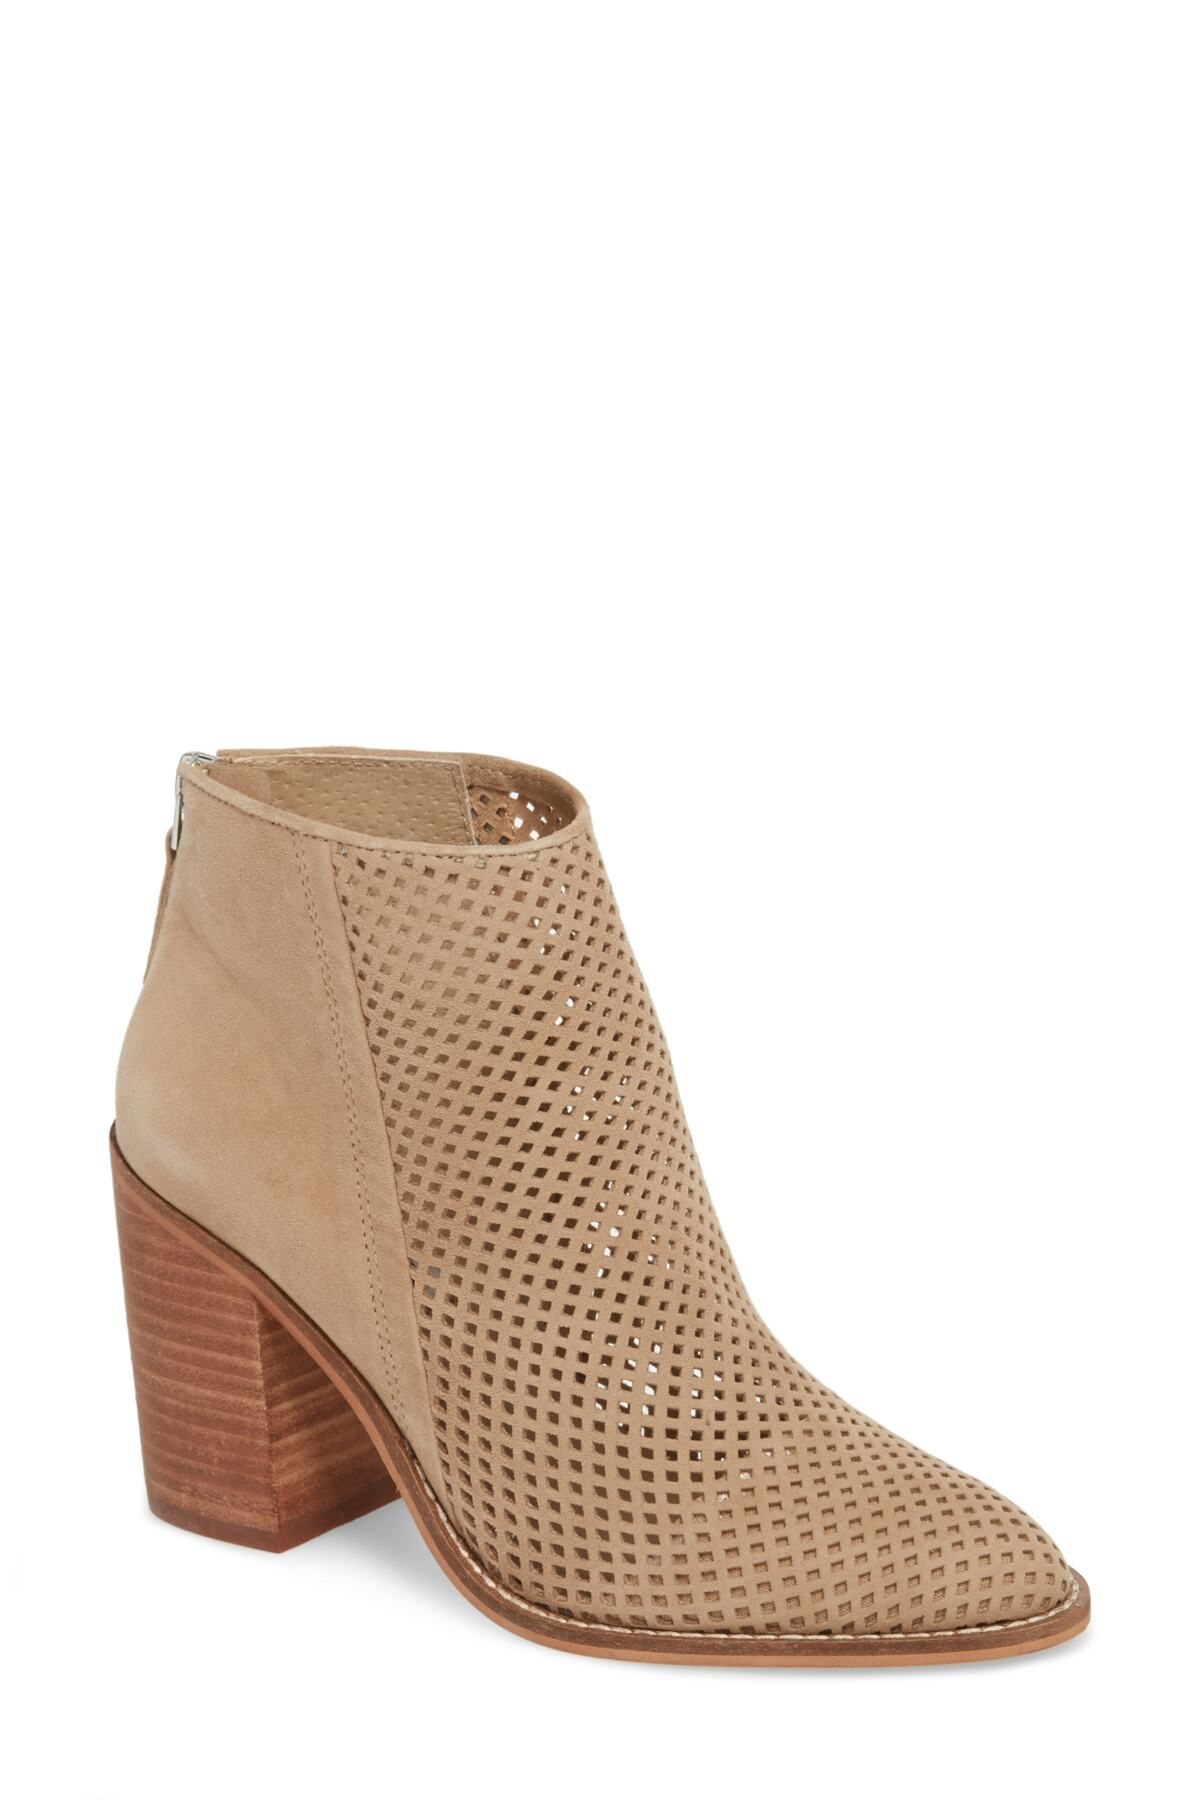 8d8883081b0 Steve Madden - Rumble Perforated Bootie (Women) is now 62% off. Free